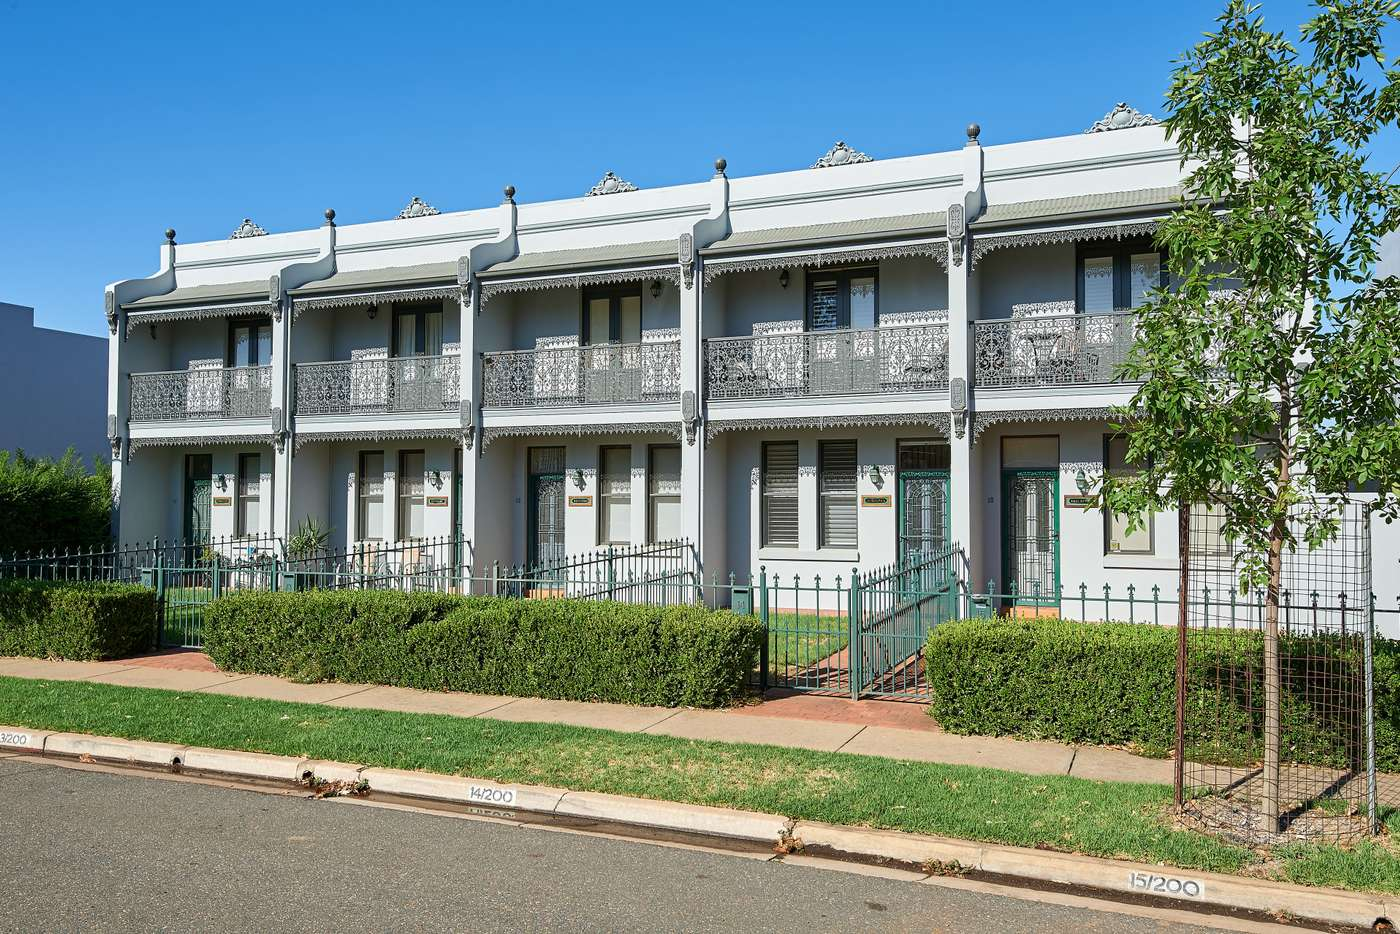 Main view of Homely townhouse listing, 15/200 Fitzmaurice Street, Wagga Wagga NSW 2650